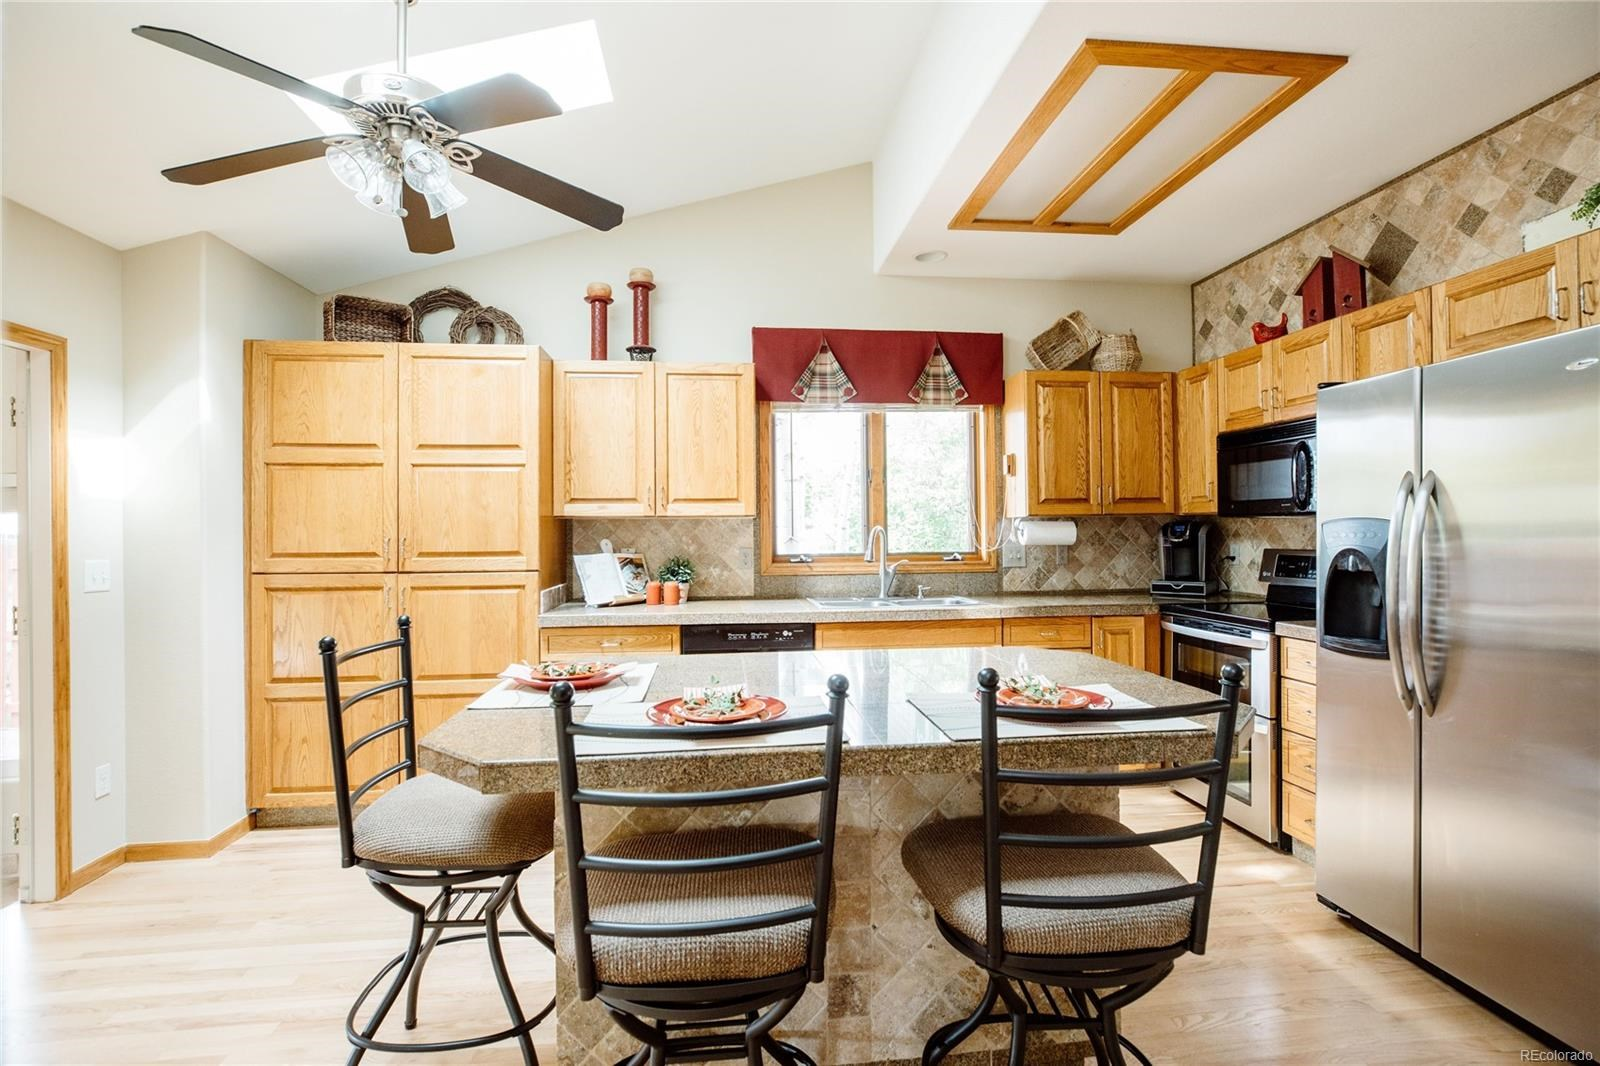 MLS# 4033949 - 10 - 3713 Ashmount Drive, Fort Collins, CO 80525